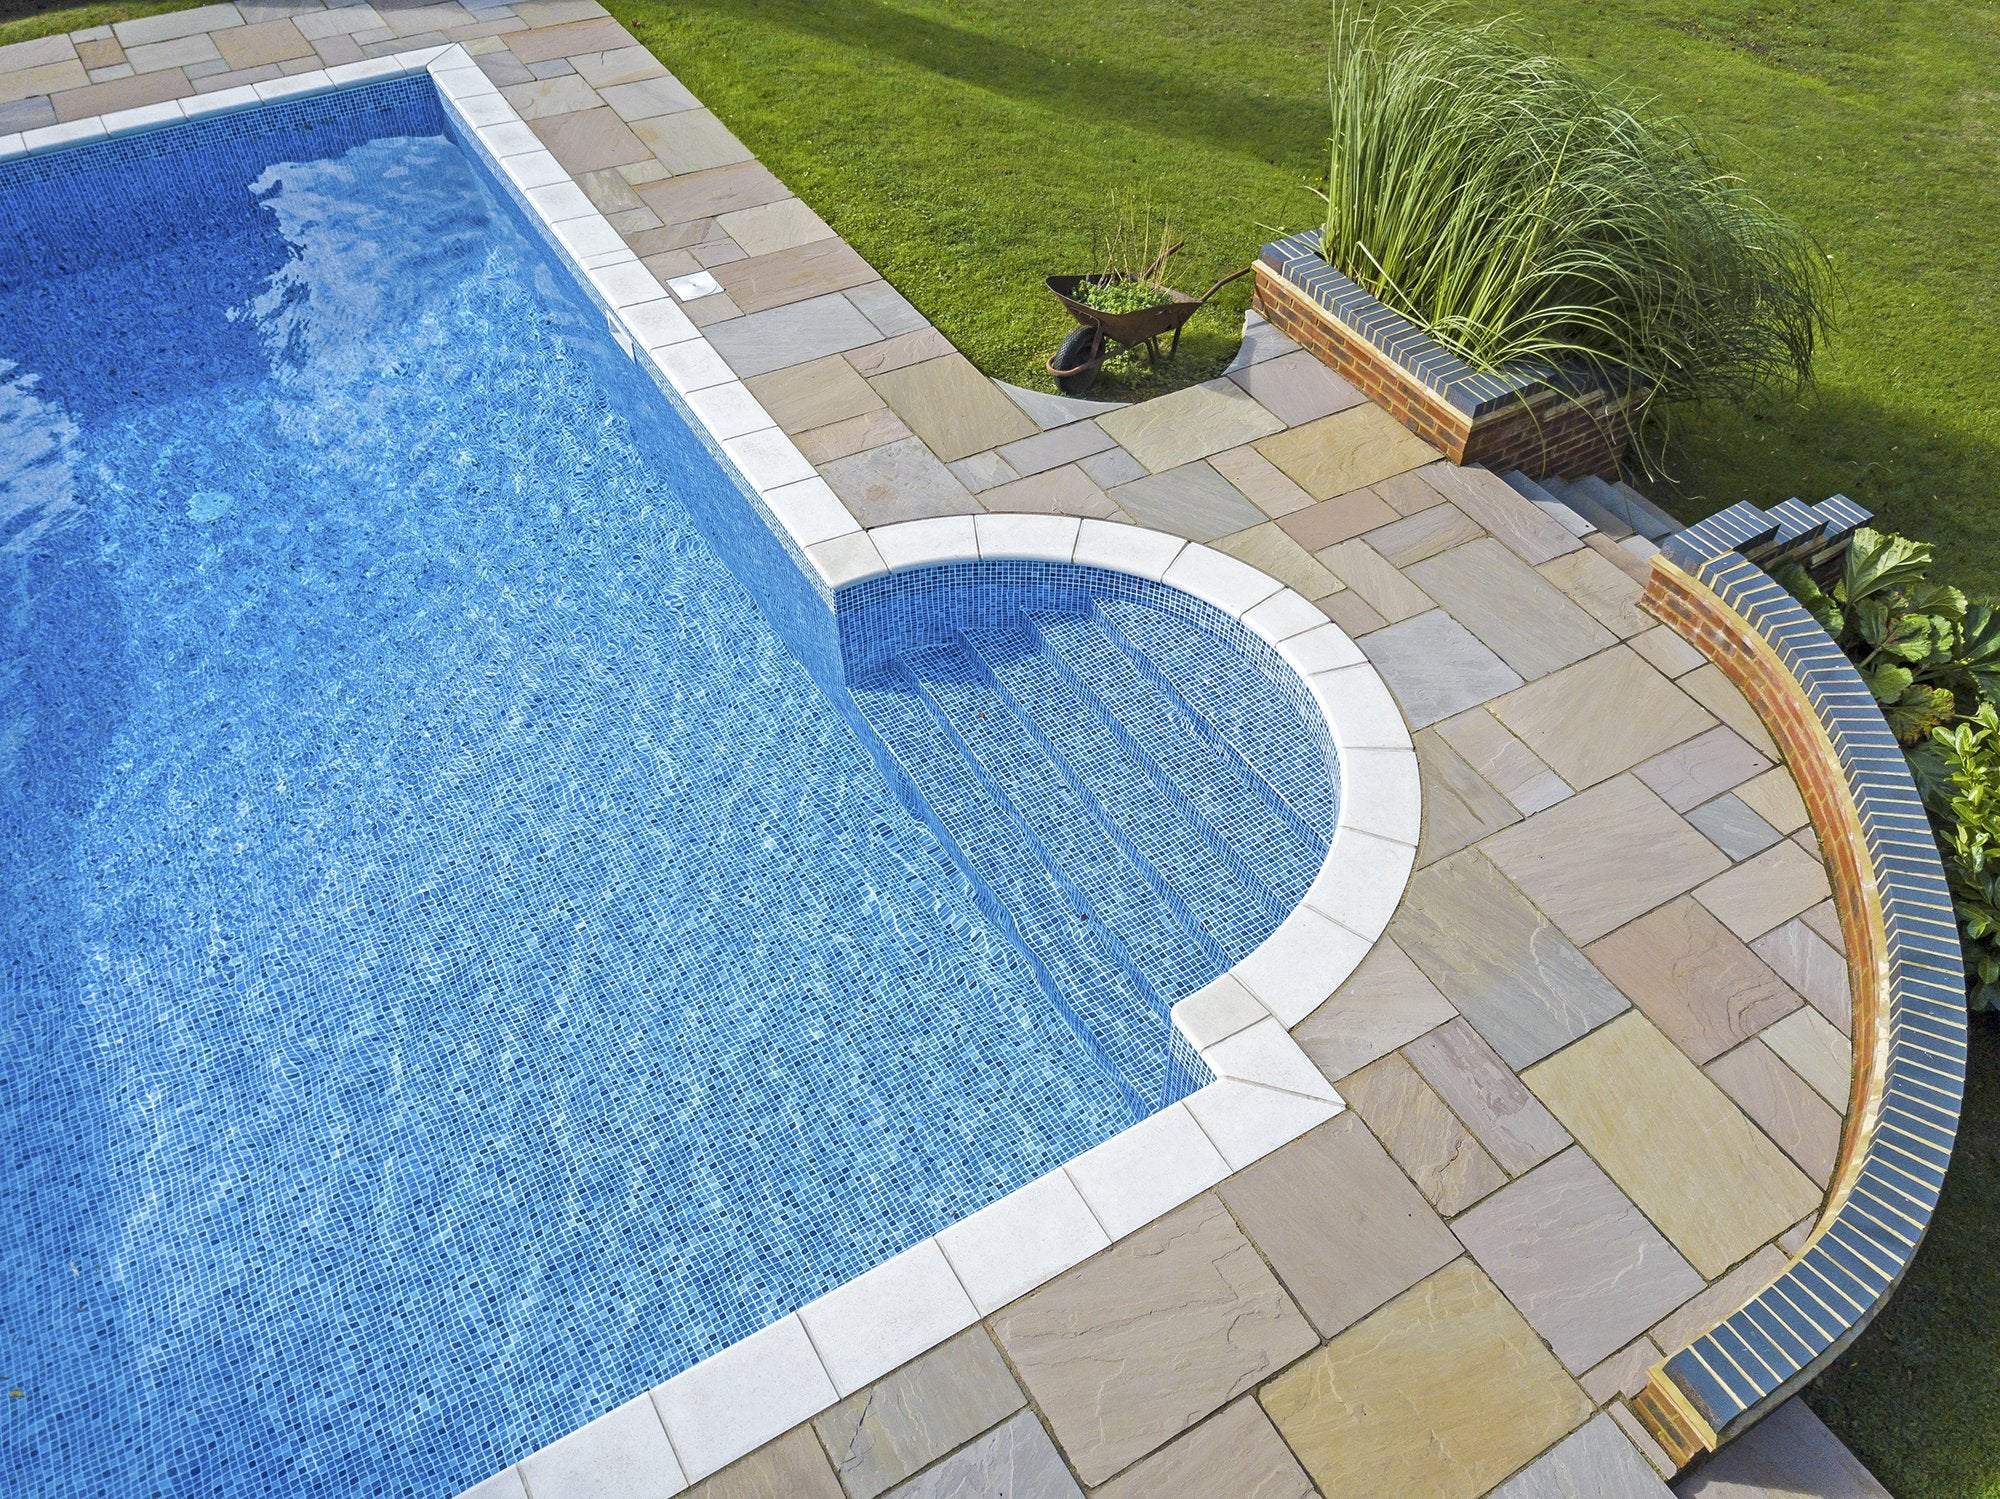 Swimming pool running costs to consider